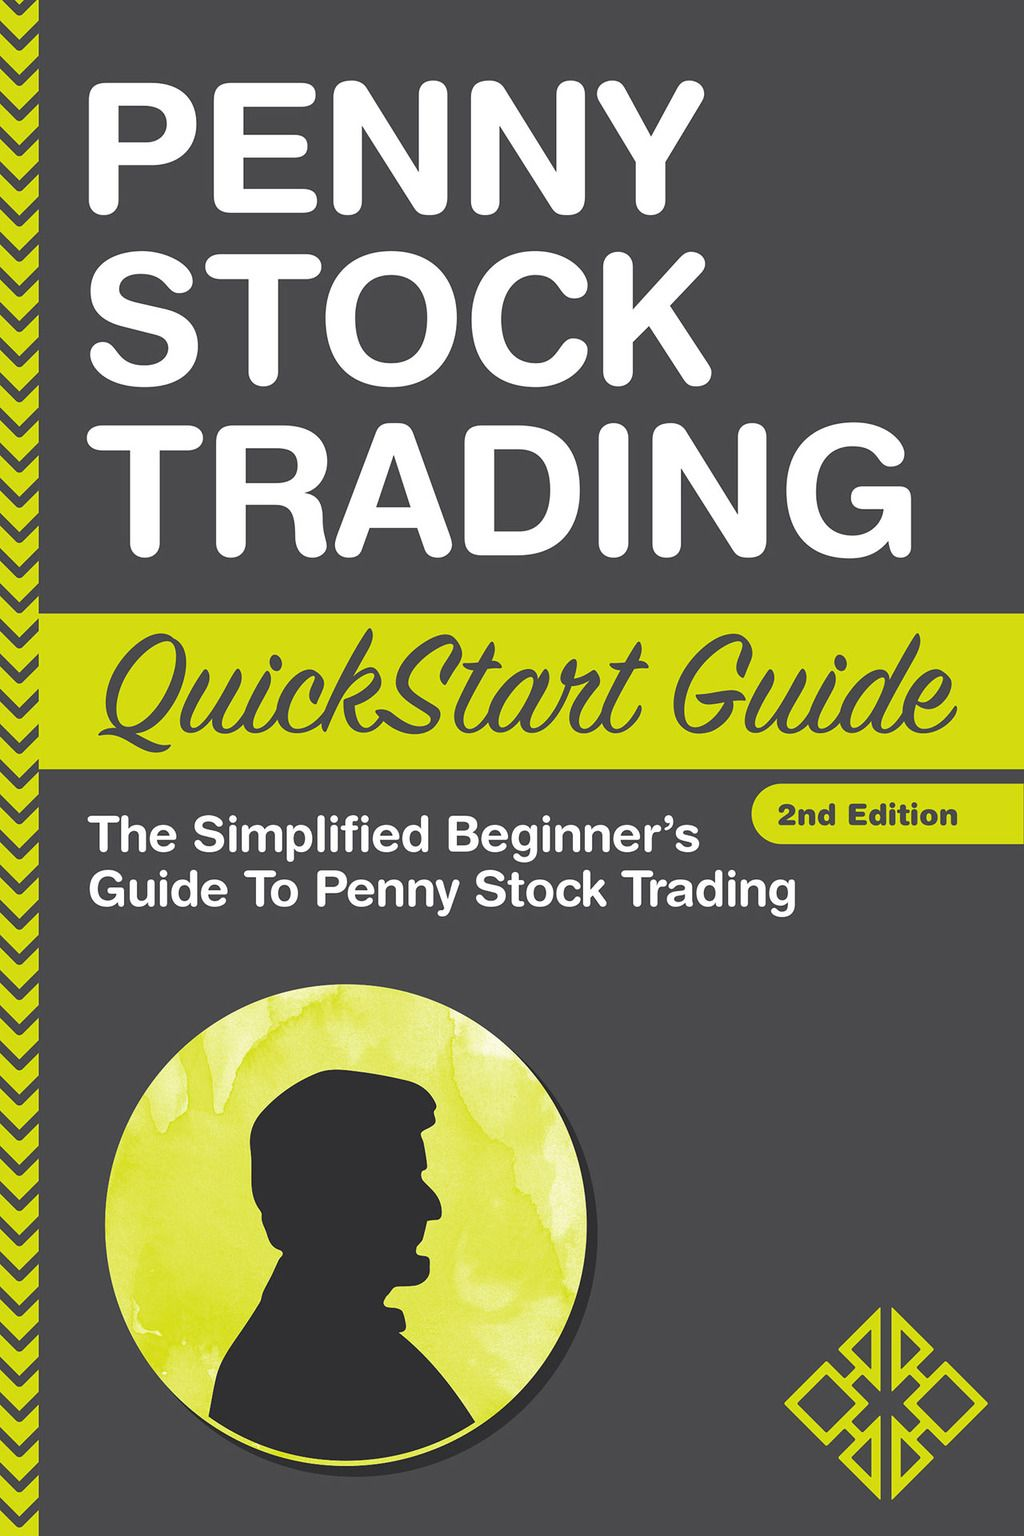 Penny Stock Trading QuickStart Guide (eBook) Penny stock